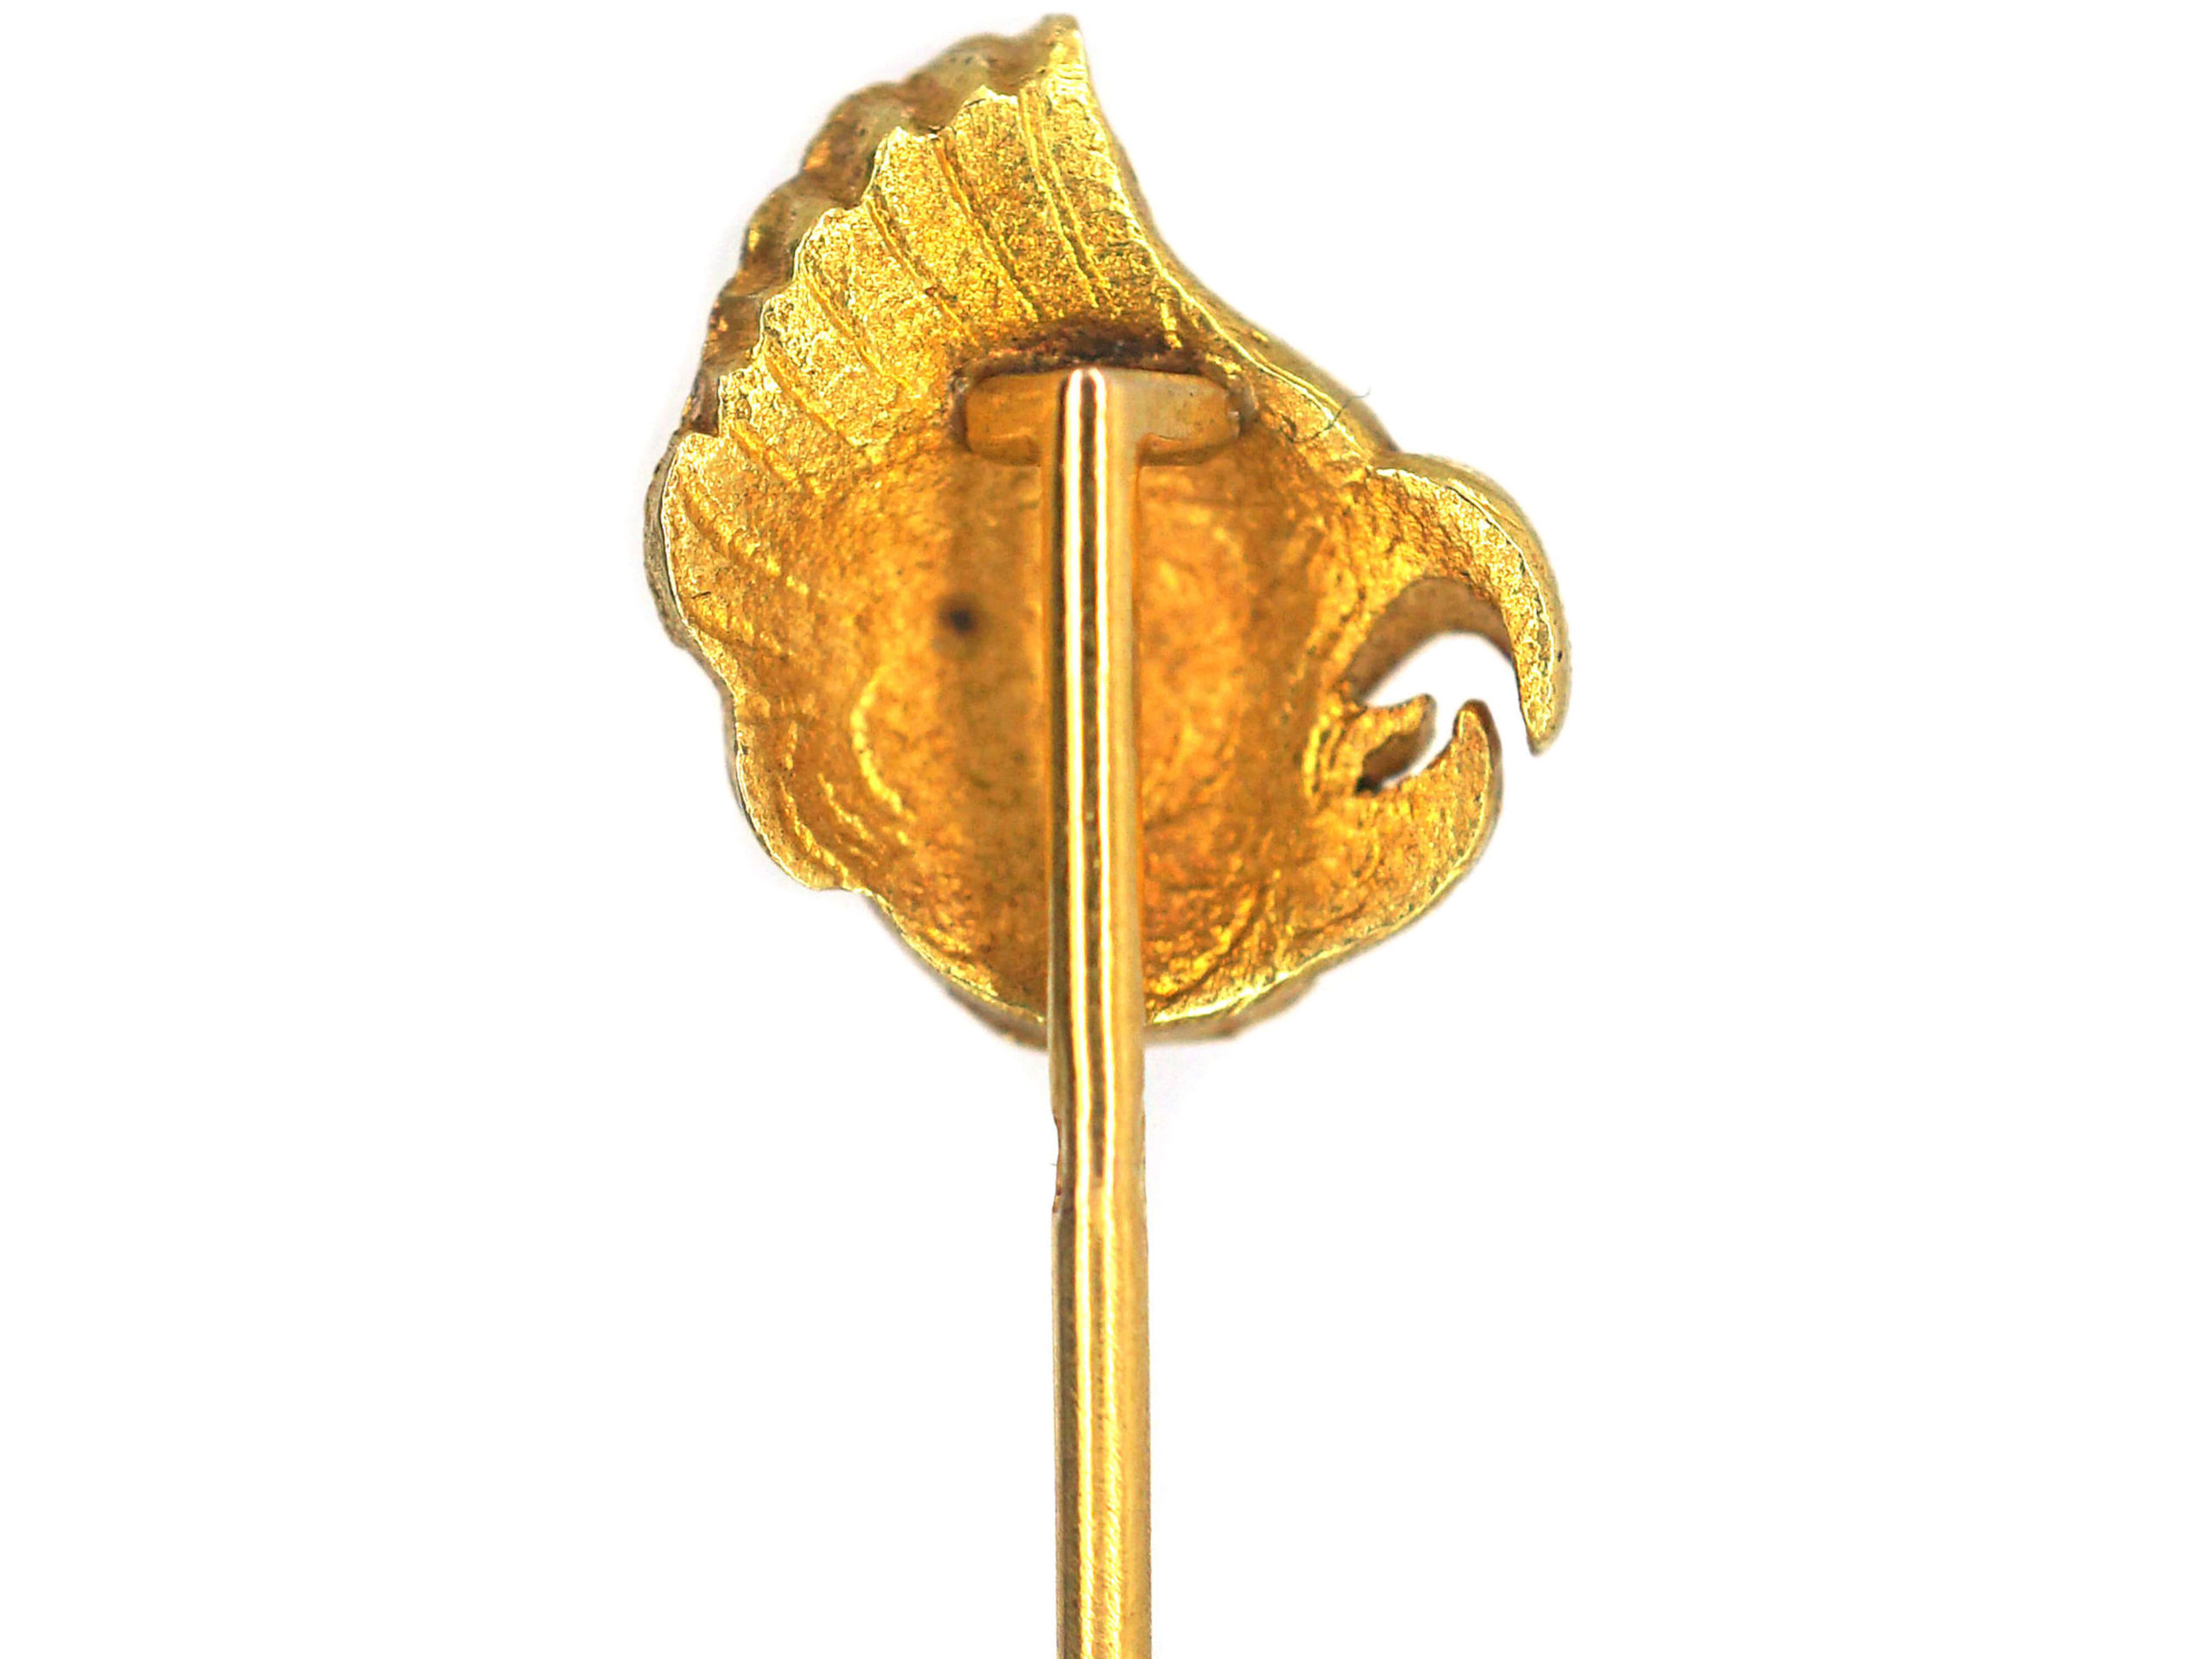 French 18ct Gold Cockerel's Head Tie Pin